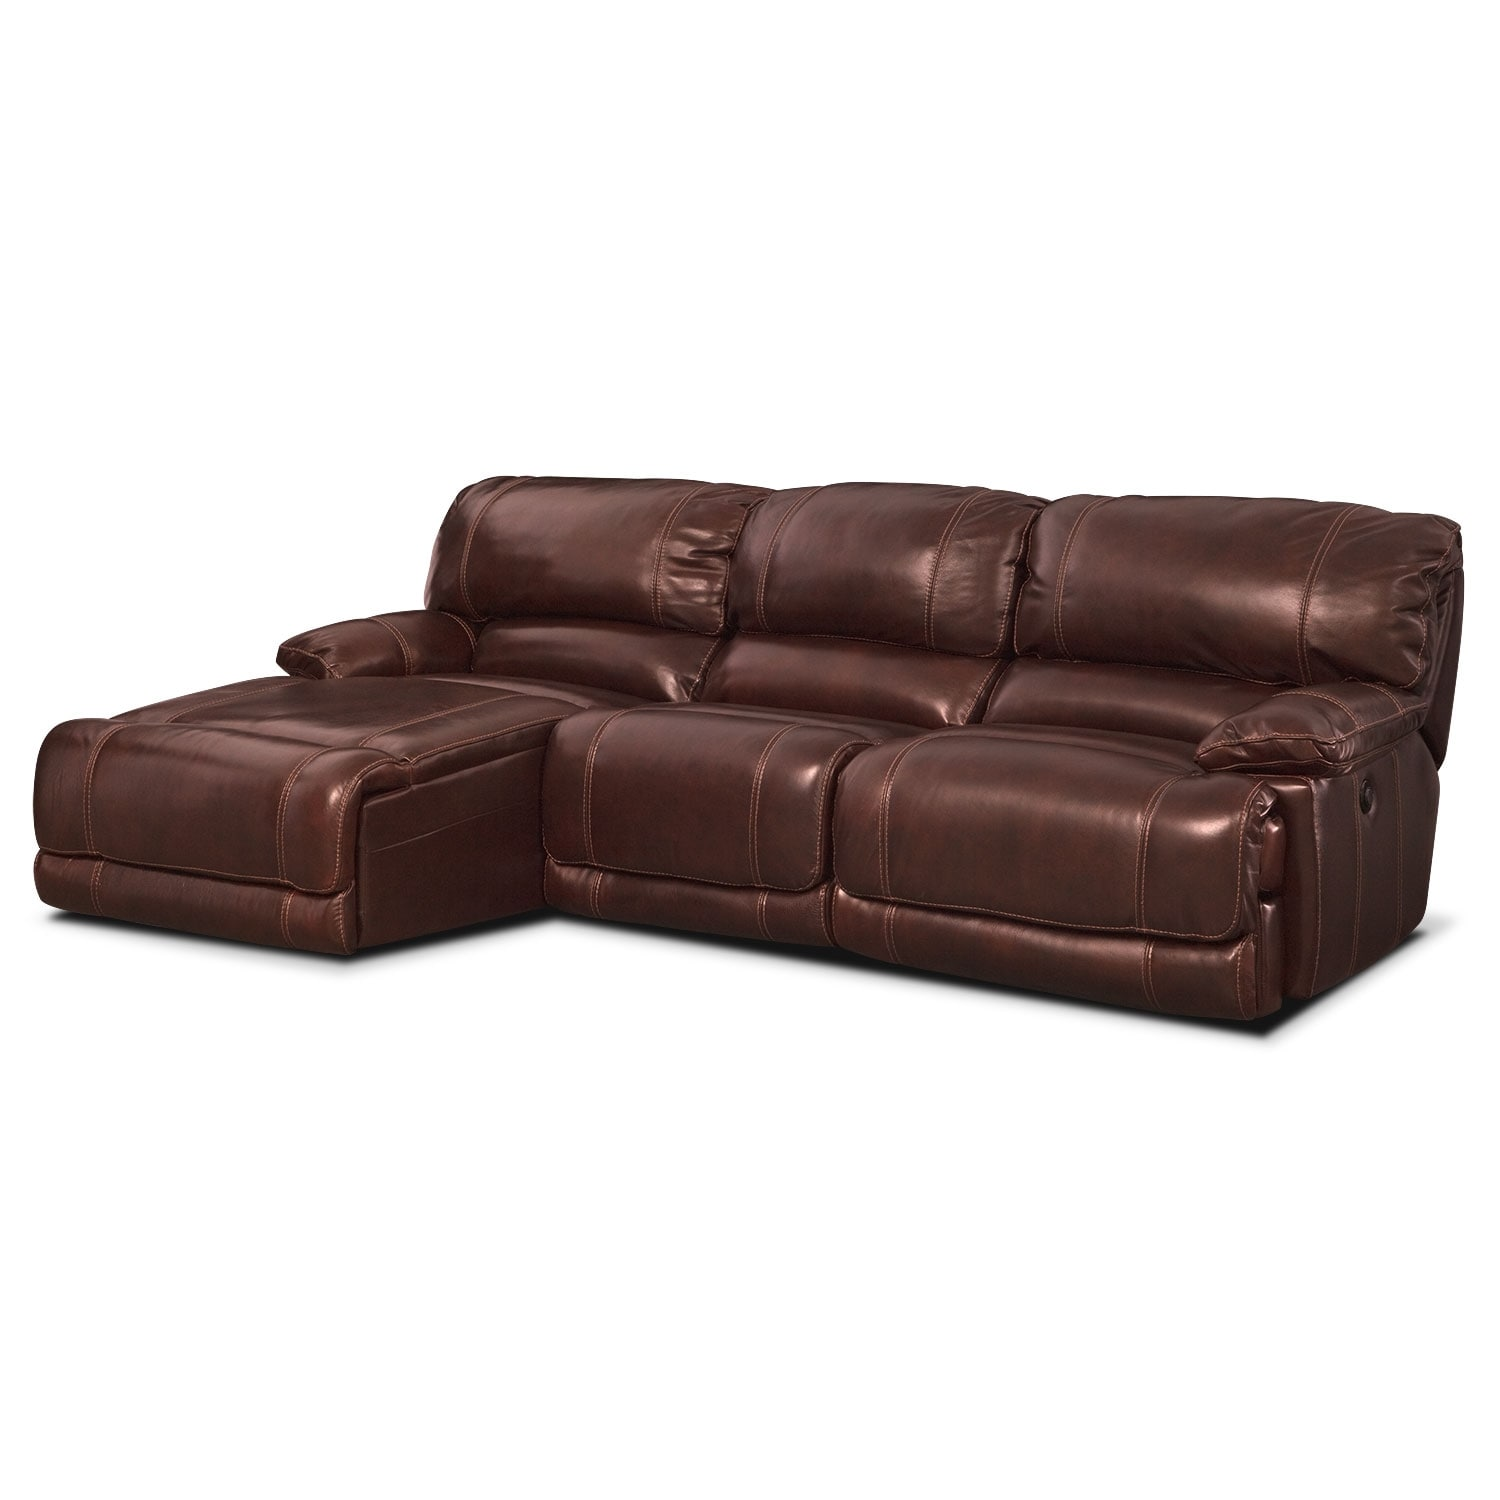 Living Room Furniture - St. Malo 3-Piece Power Reclining Sectional with Left-Facing Chaise - Burgundy